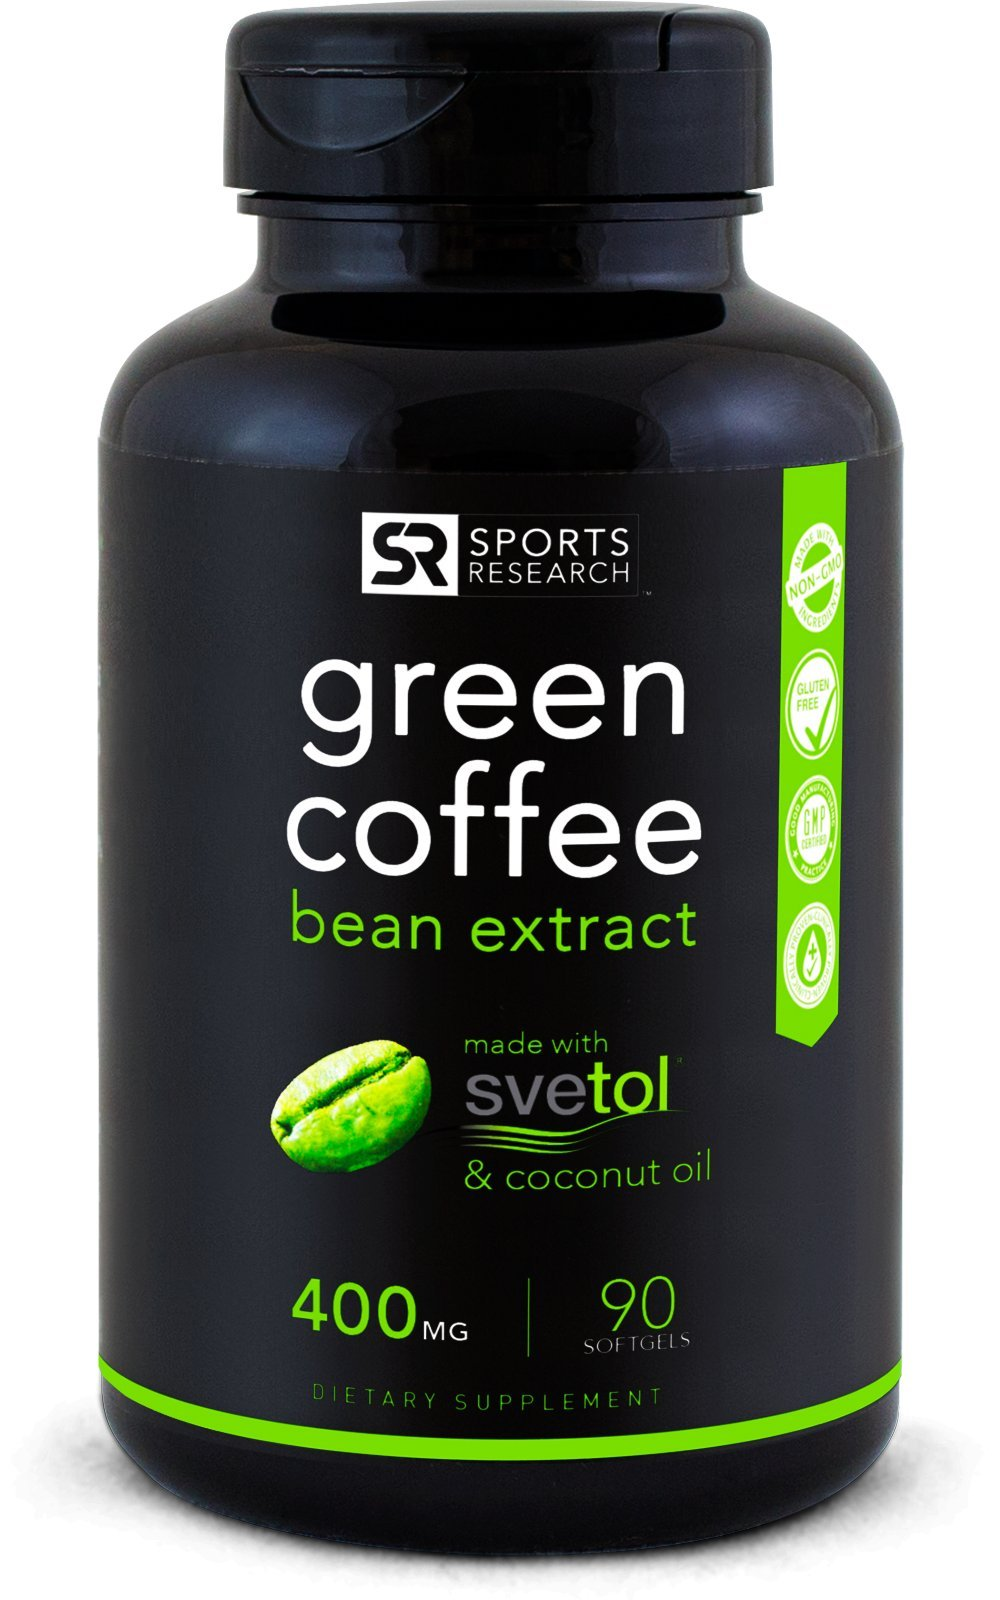 Sports Research Green Coffee Bean Extract with Pure Svetol, 90 Liquid Softgels by Sports Research